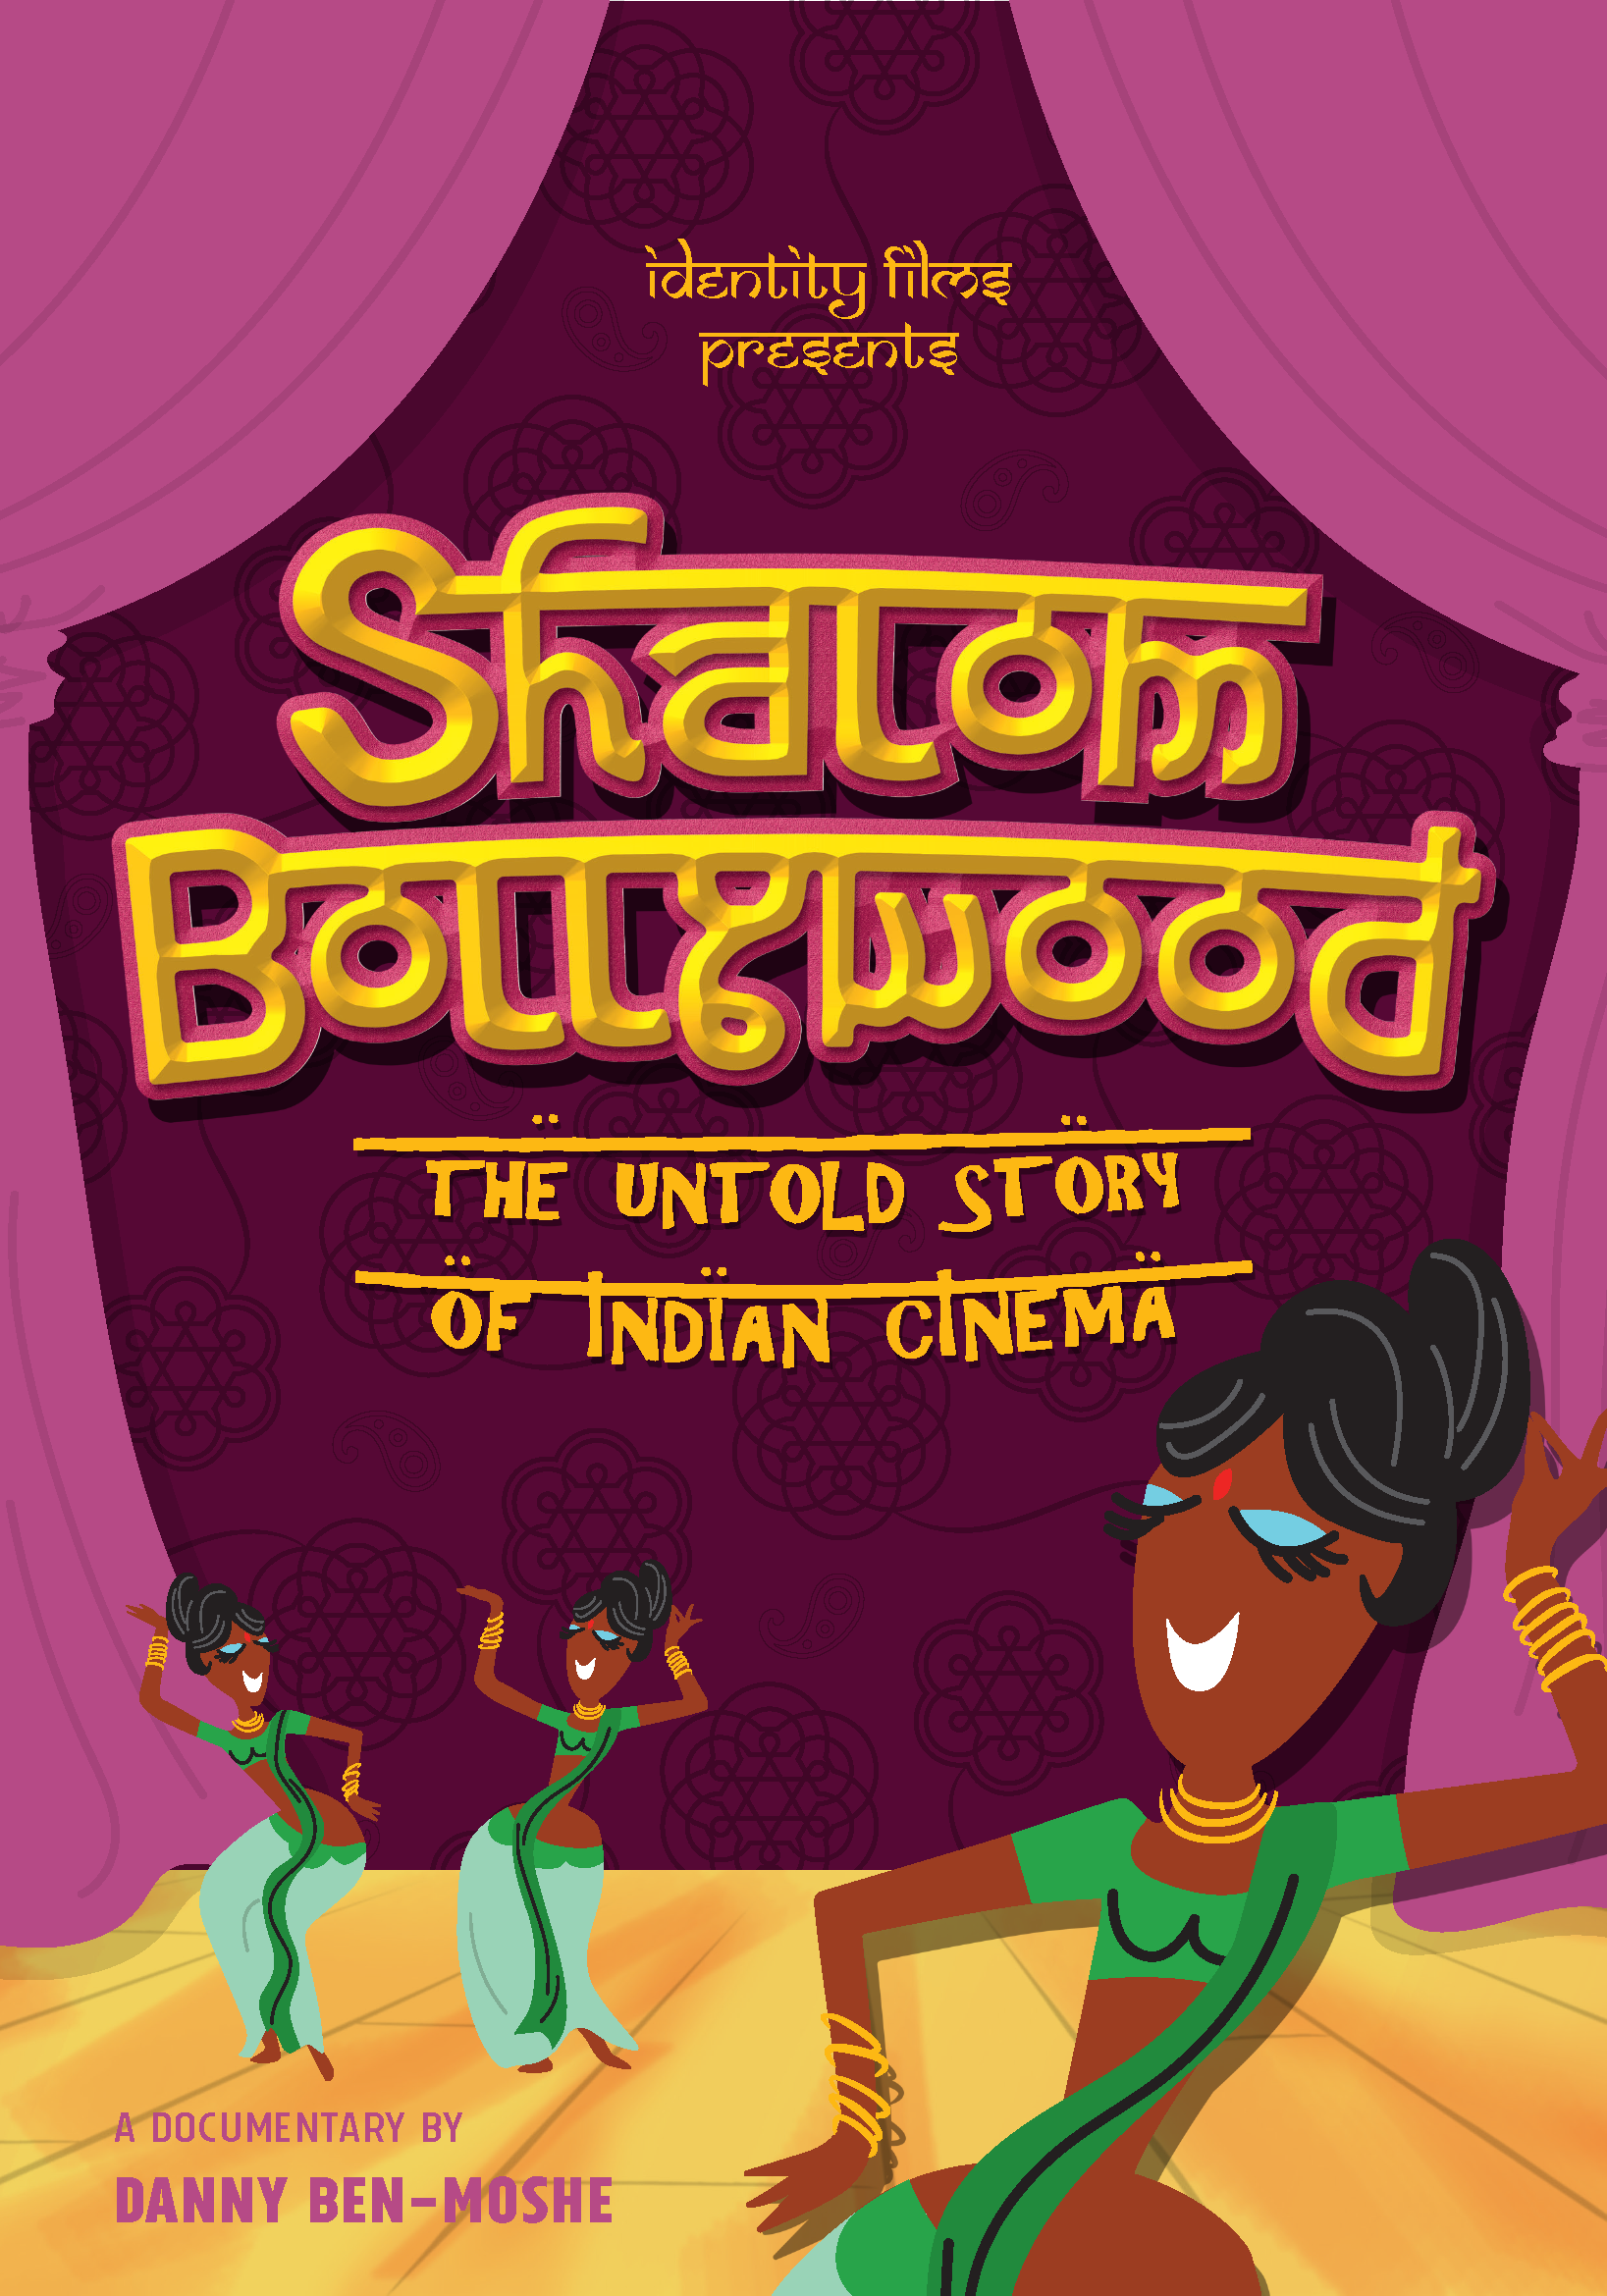 SHALOM BOLLYWOOD - 20171 x 90 minDocumentaryIdentity FilmsSHALOM BOLLYWOOD: THE UNTOLD STORY OF INDIAN CINEMA is a feature length documentary, told in the style and feel of a Bollywood film. It reveals the unknown history of India's tiny 2000 year old Indian Jewish community and its female superstars who shaped the world's biggest film industry.